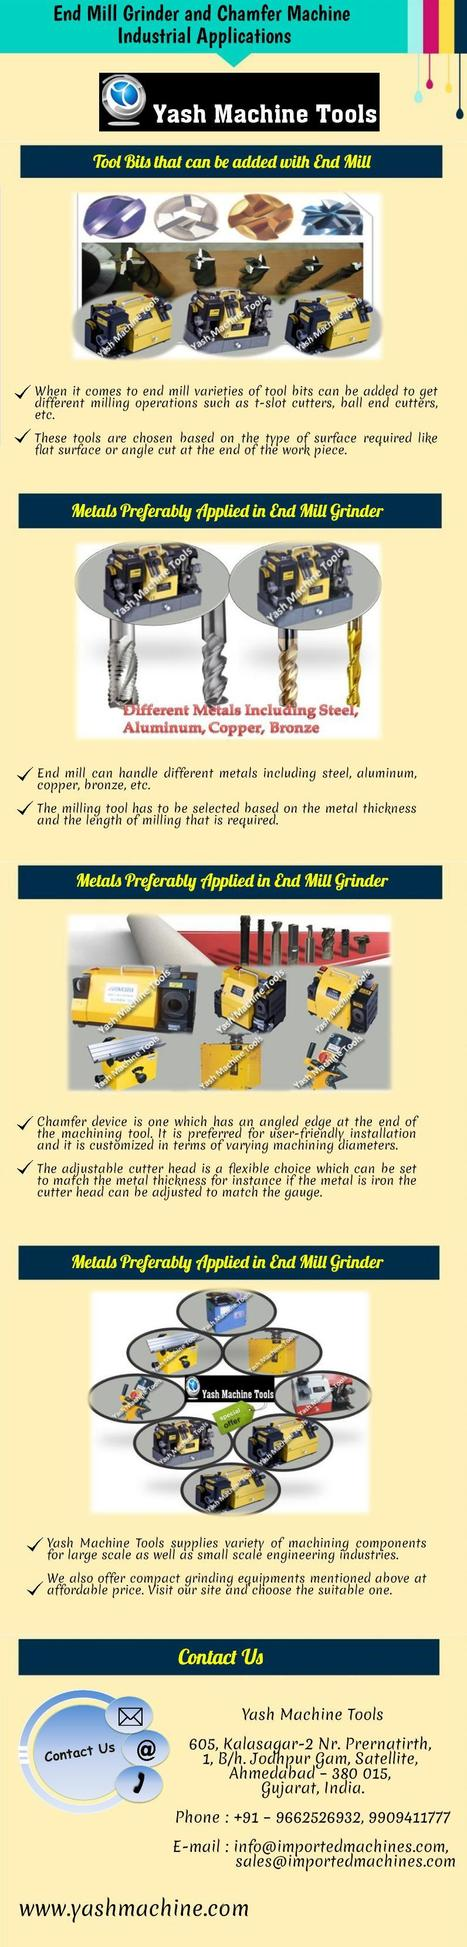 End Mill Grinder and Chamfer Machine - Industrial Applications   Lathe Machines   Scoop.it